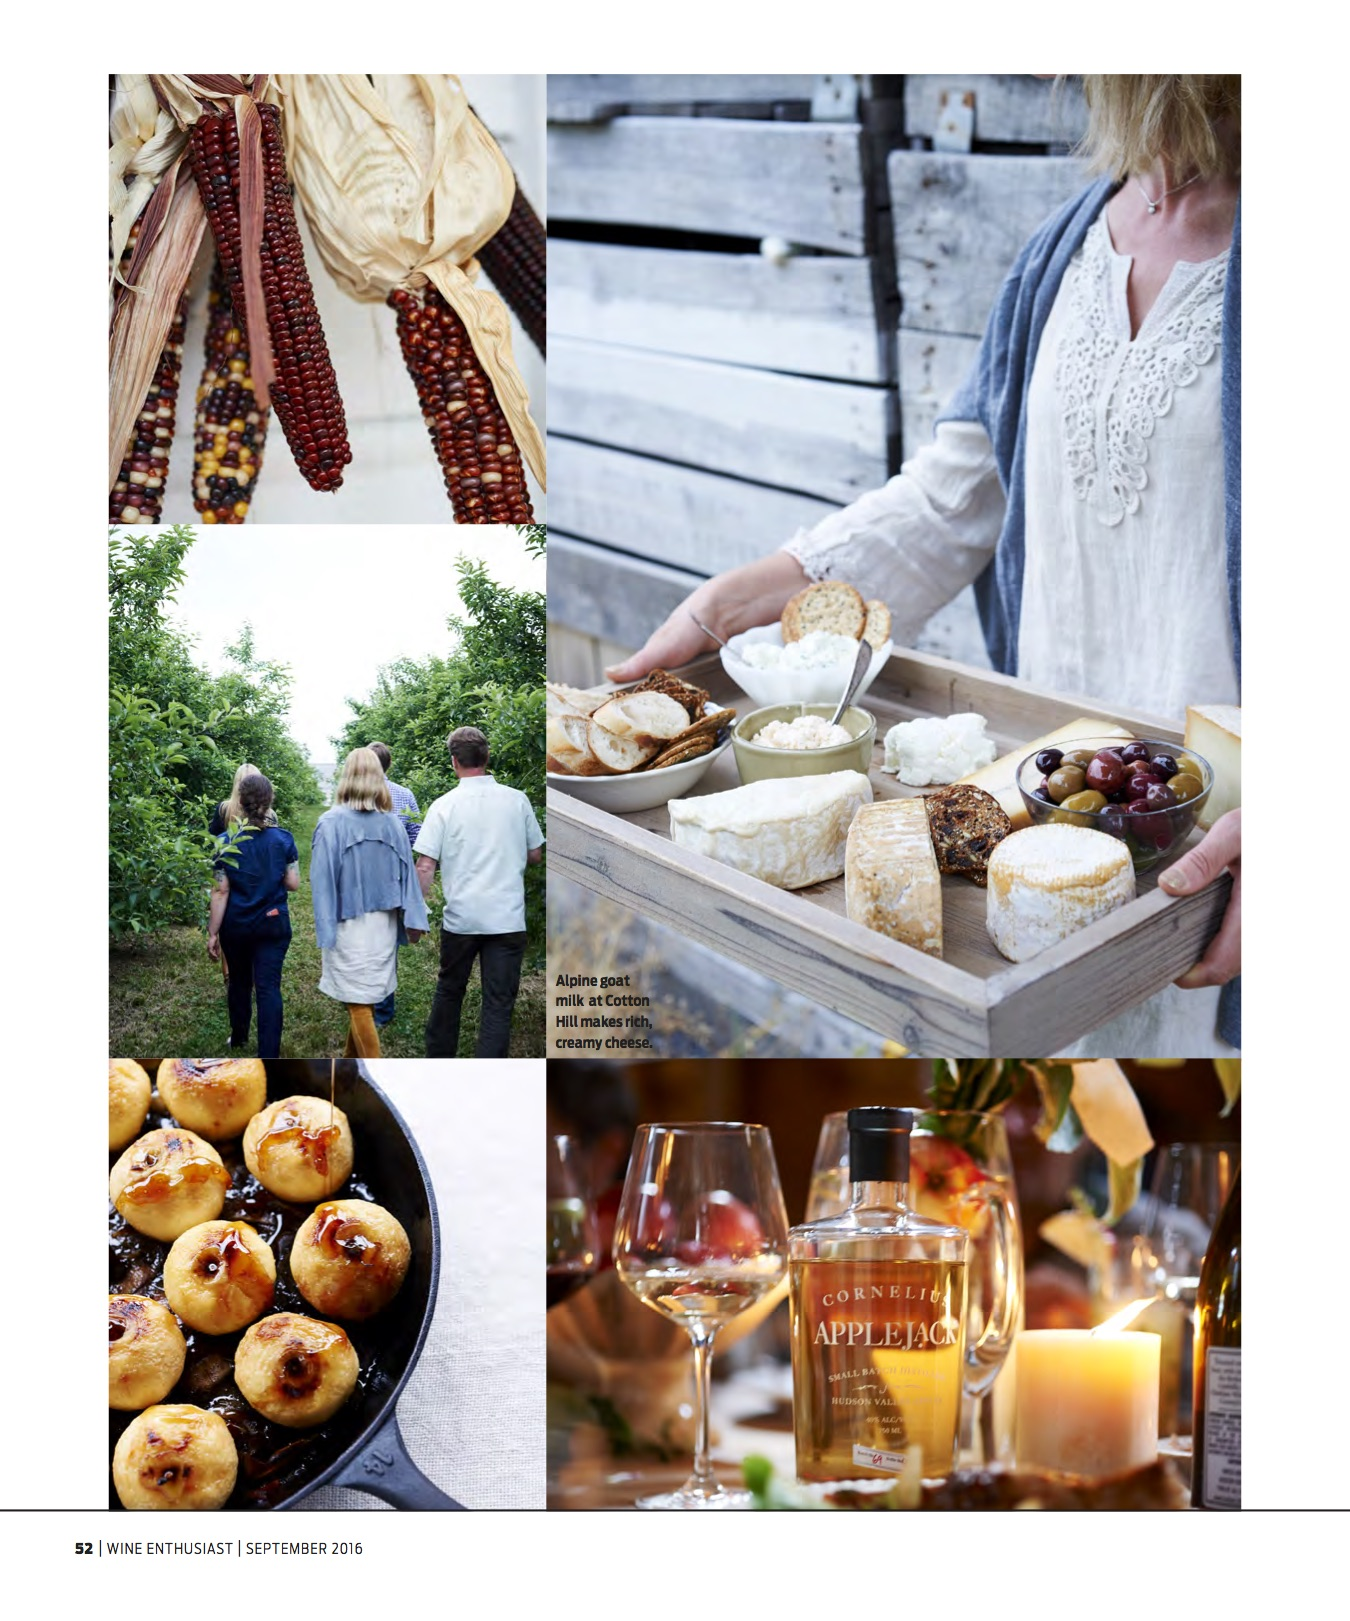 Wine Enthusiast Sept 2016 Baked Apples & Cheese